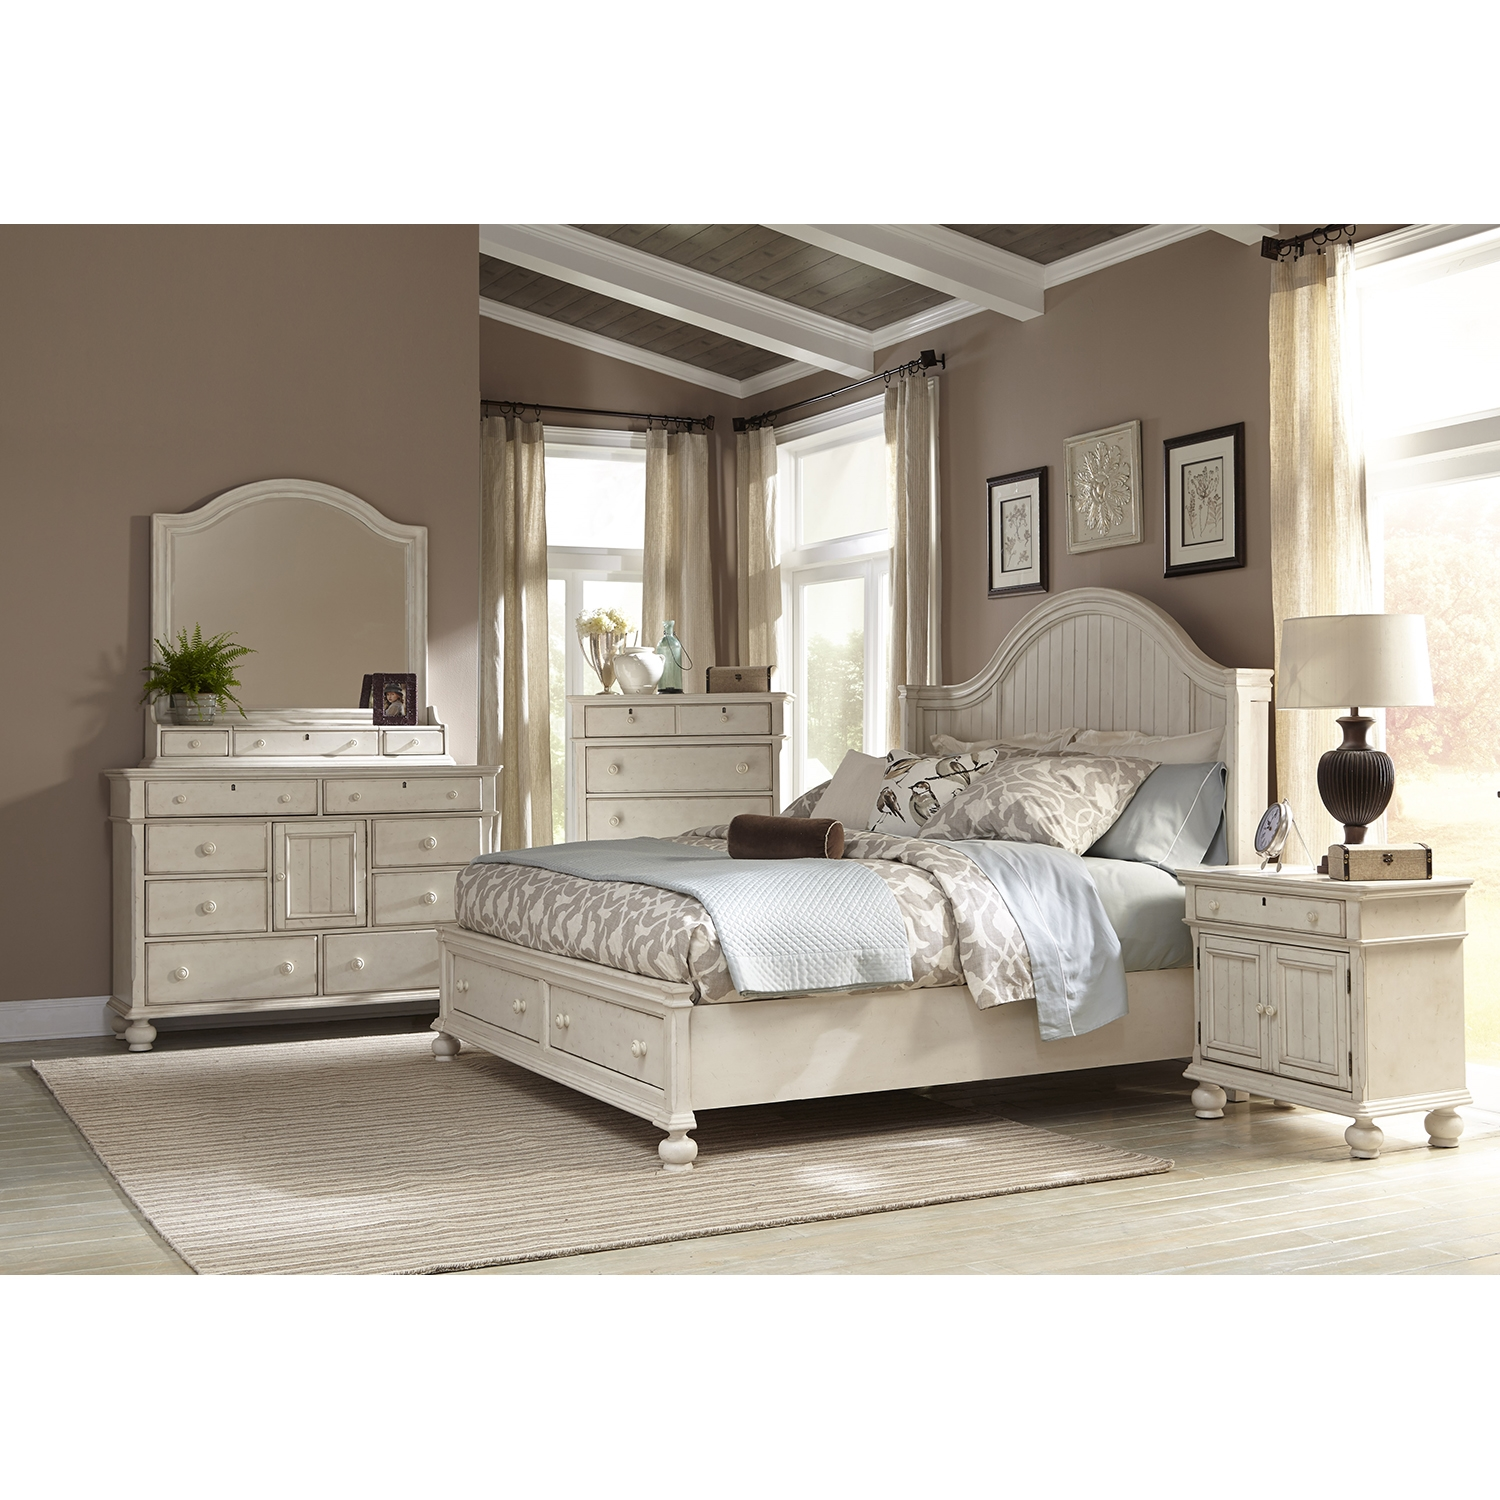 Newport King Panel Storage Bedroom Set in Antique Birch - AW-3710-66PBS-SET